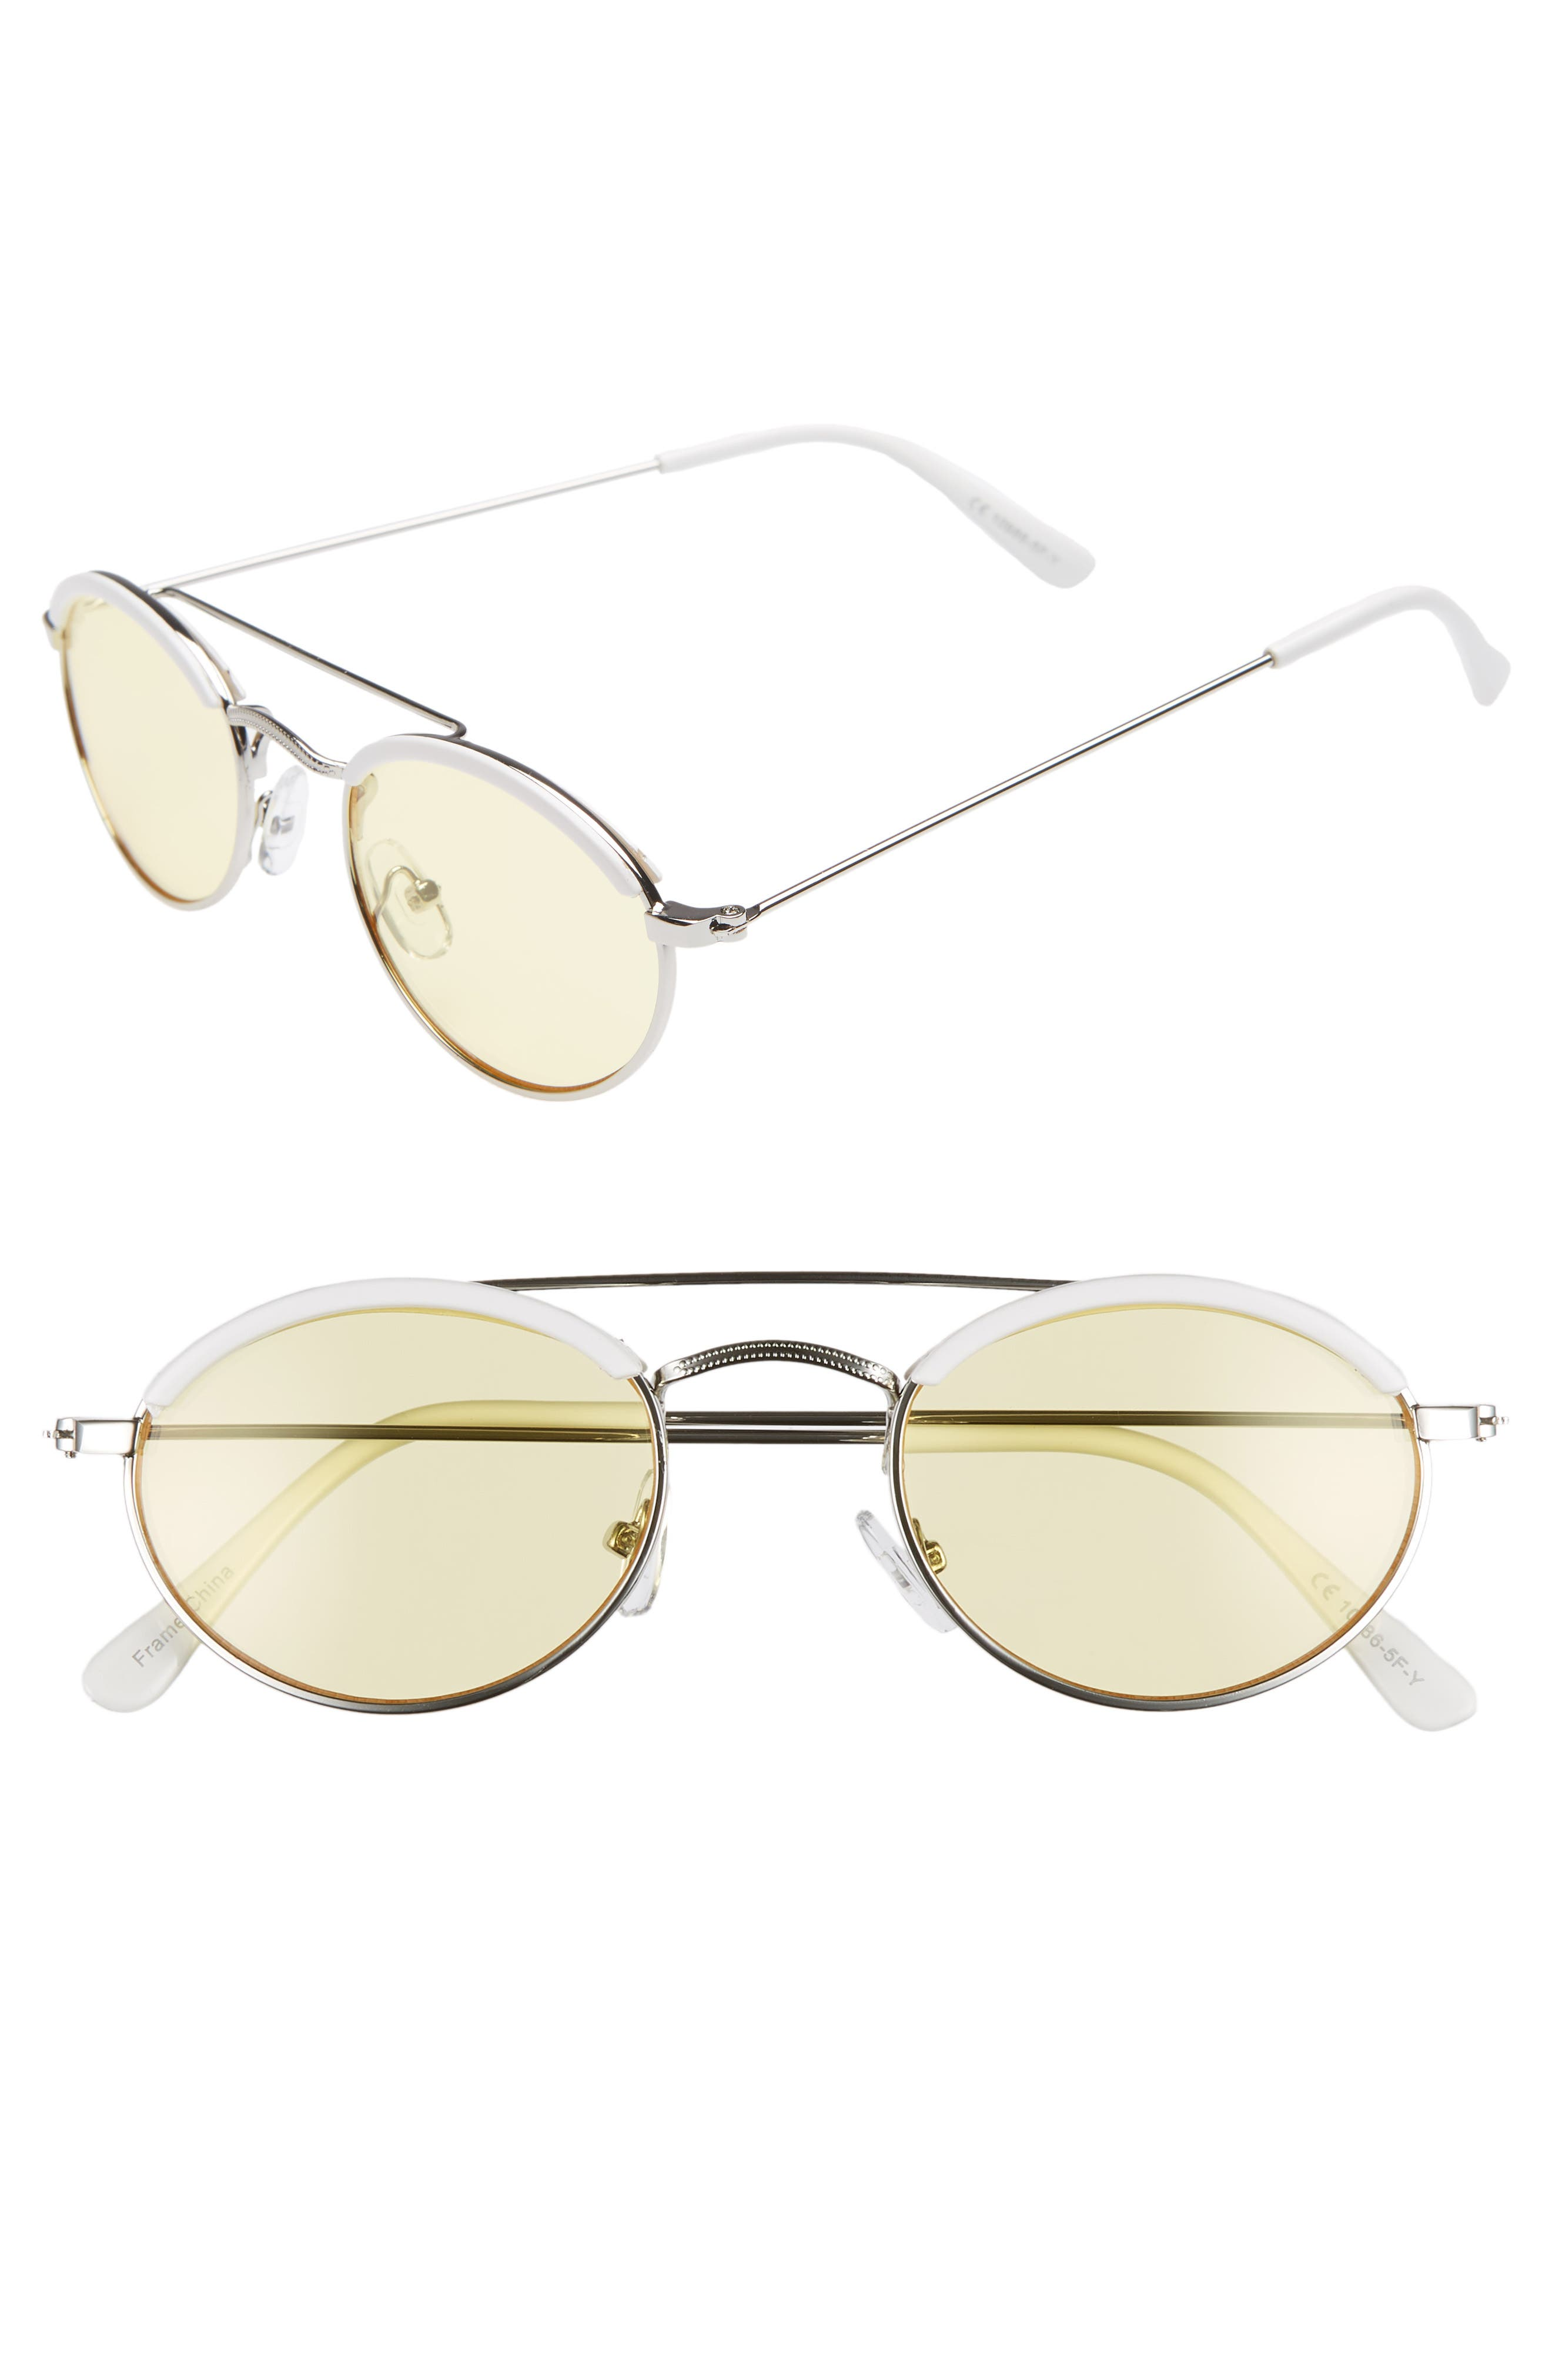 50mm Round Sunglasses,                             Main thumbnail 1, color,                             WHITE/ YELLOW